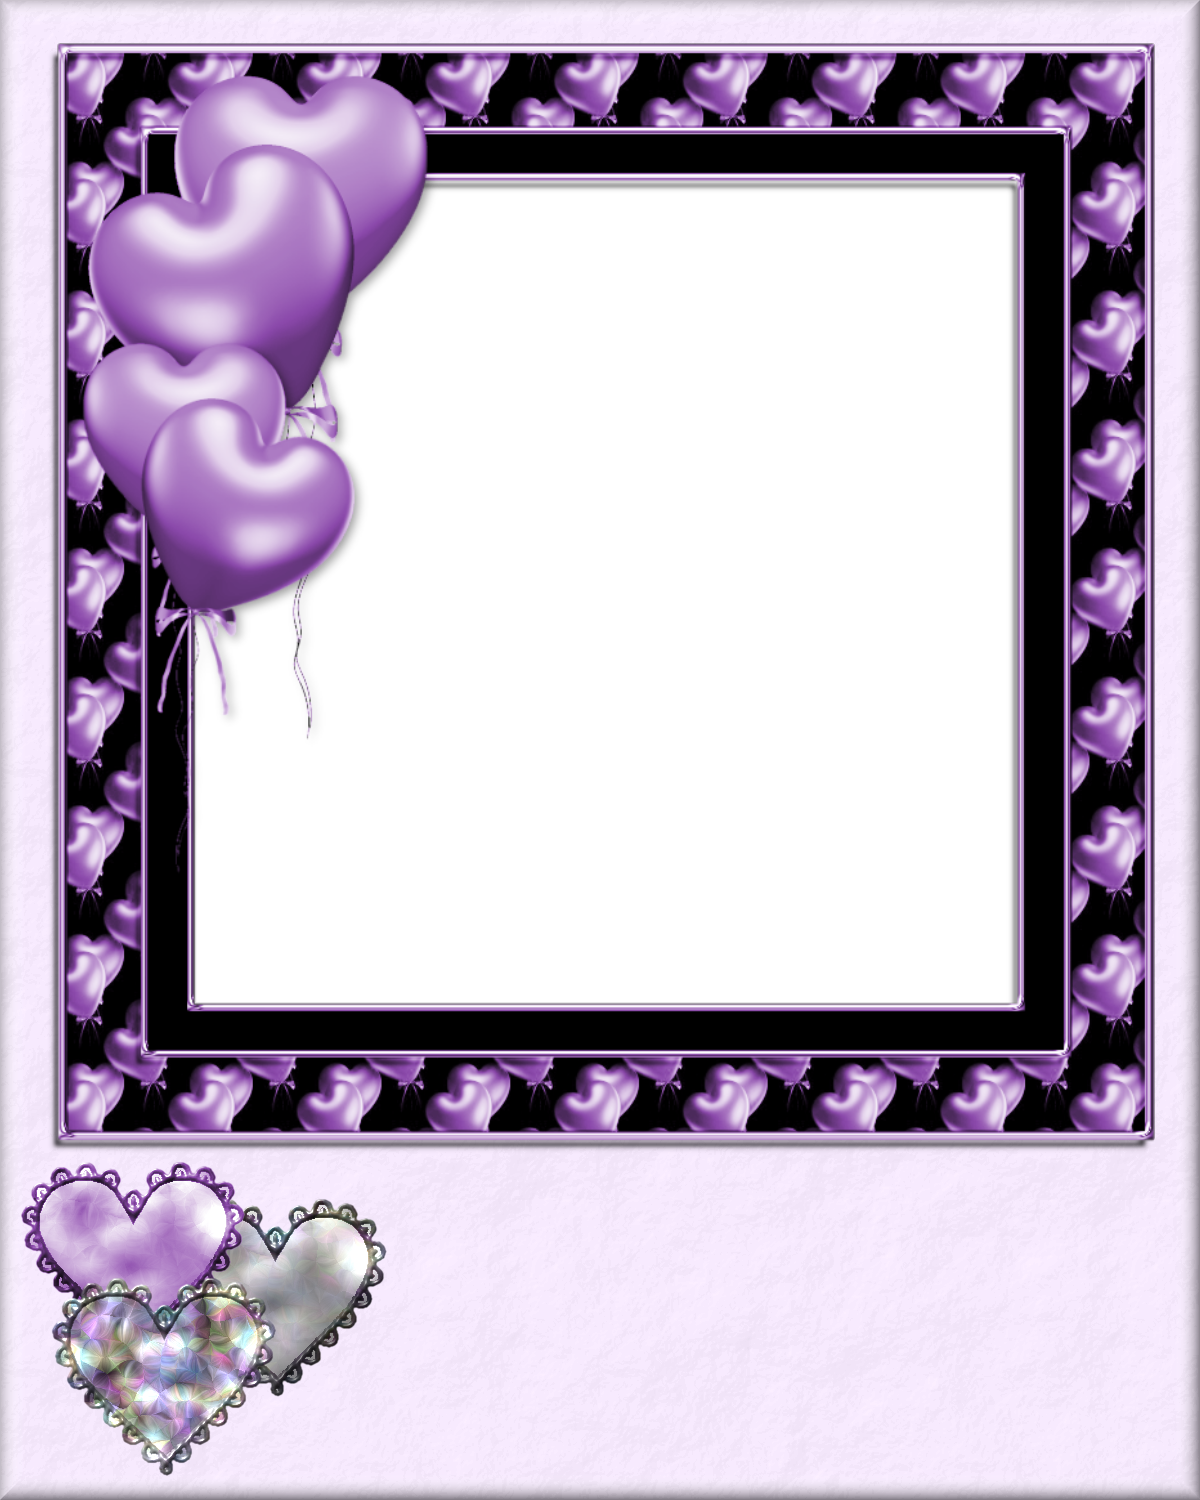 http://free-printable-greeting-cards.com/wp-content/uploads/2013/07/birthday-card-template-with-balloons.jpg